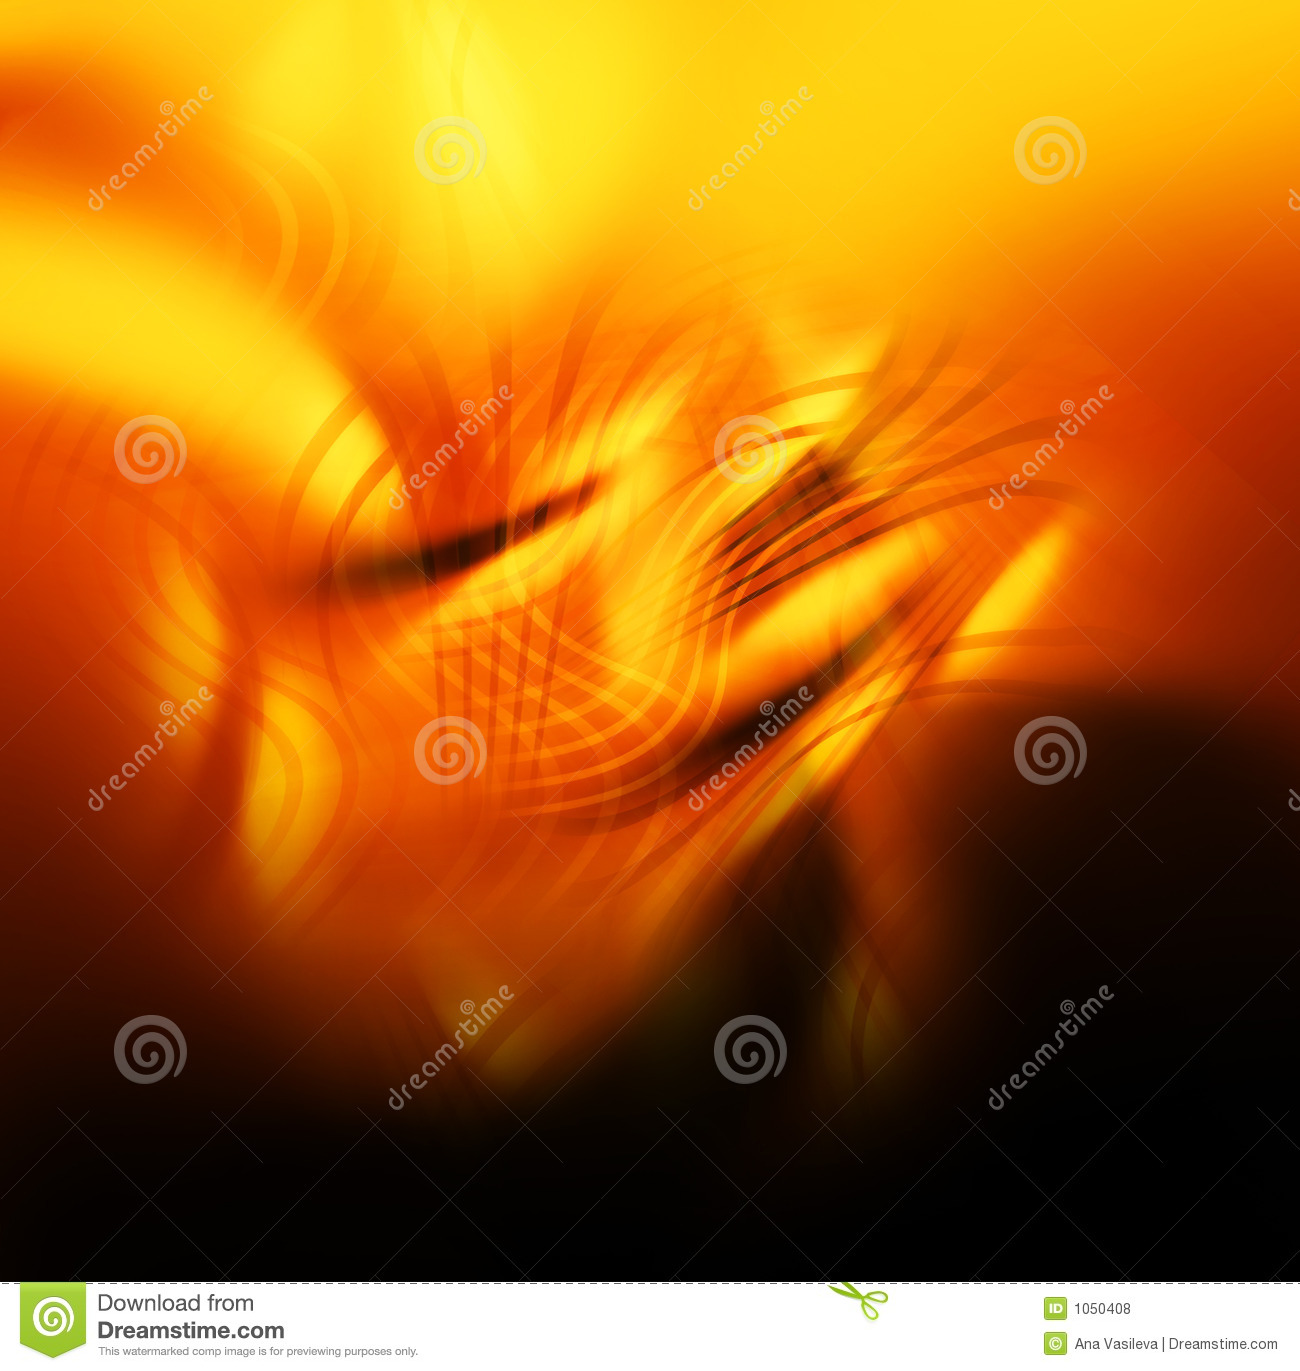 Abstract Colorful Background - Flames, Fire Royalty Free ...